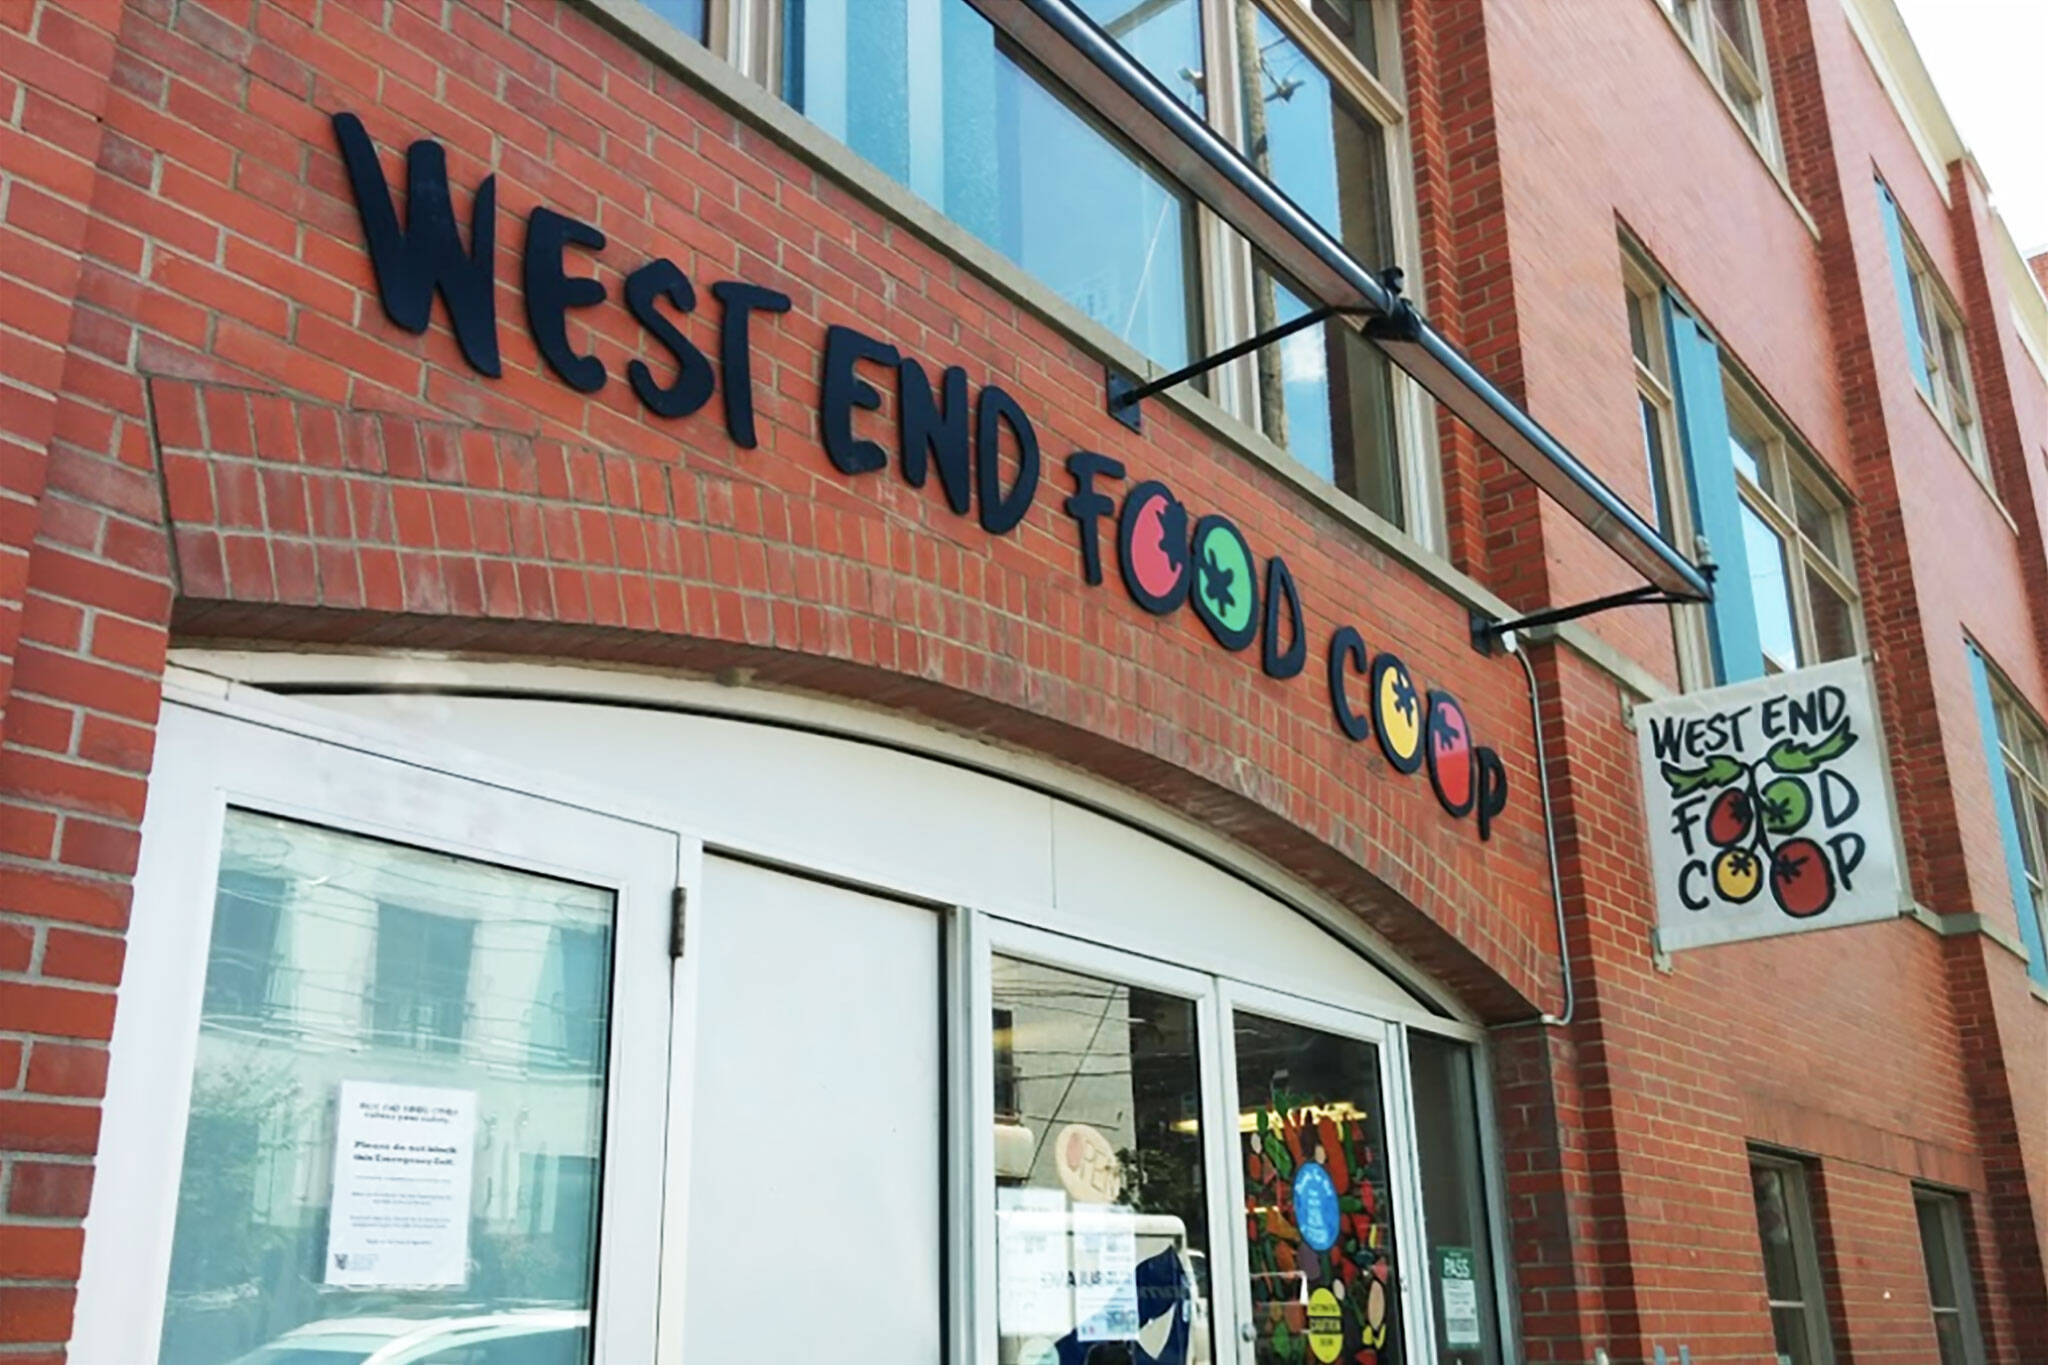 west end food coop